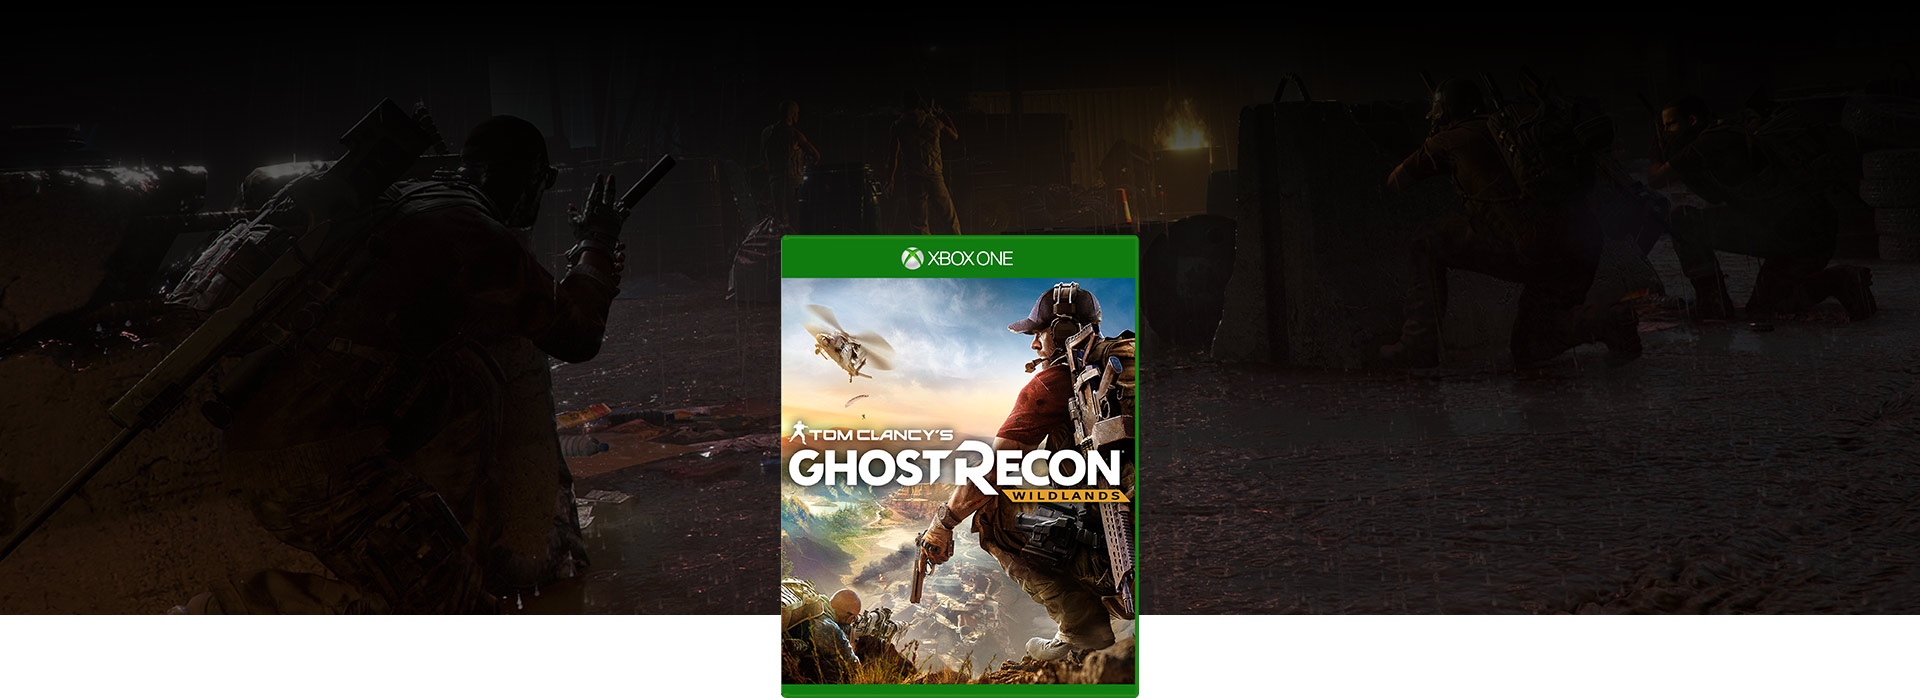 Image de la boîte de Ghost Recon Wildlands